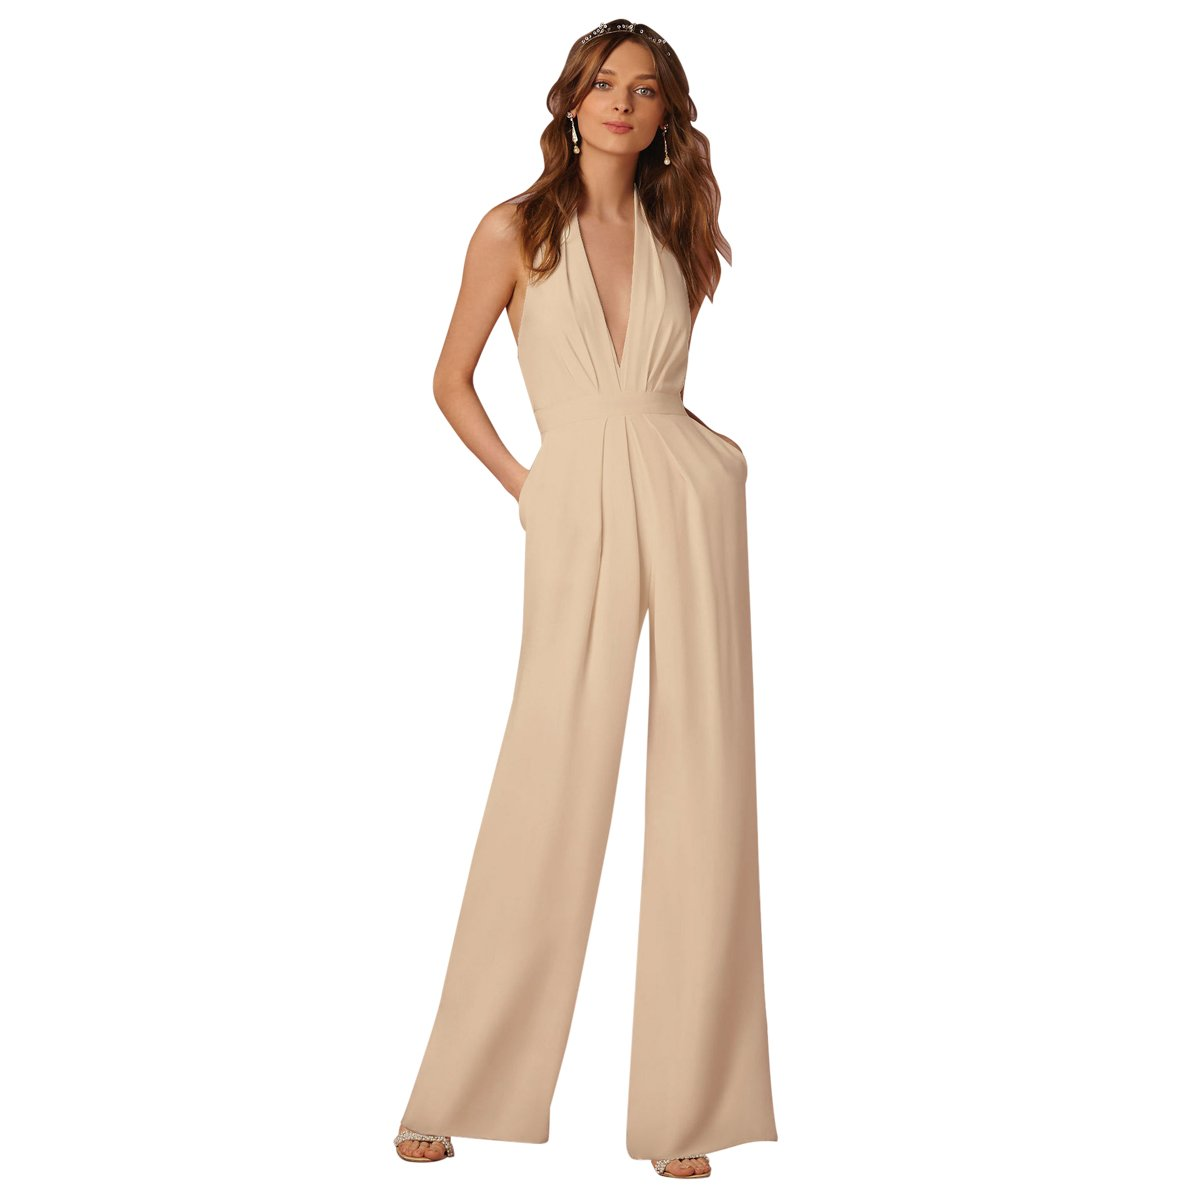 ecb48a8055e Amazon.com  IBTOM CASTLE Women s Sexy High Waisted Jumpsuits V-NeckHalter  Wide Leg Long Pants Wedding Rompers Overalls Pockets  Clothing